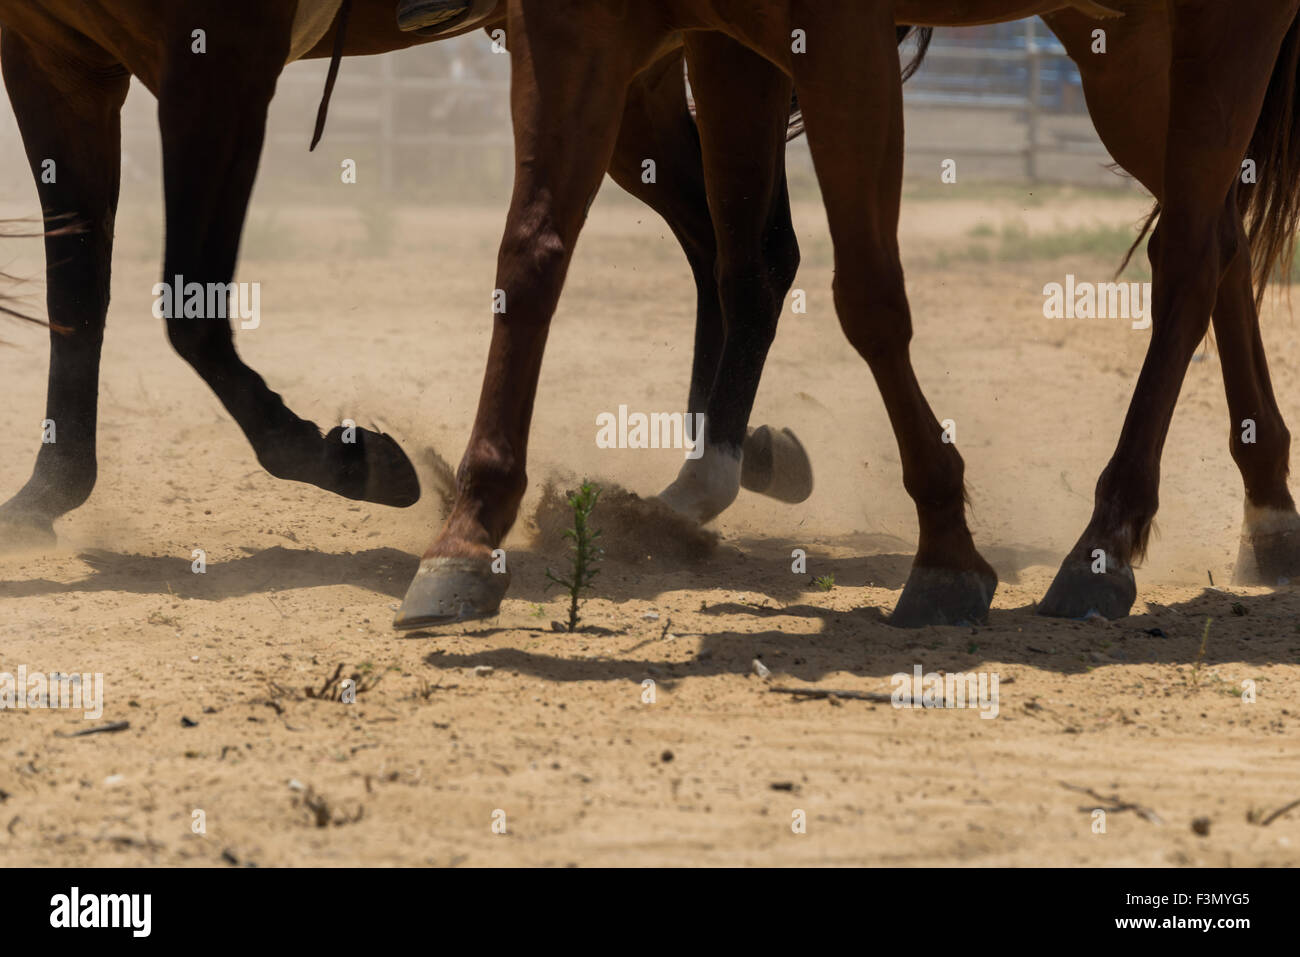 Horses in gallop - Stock Image